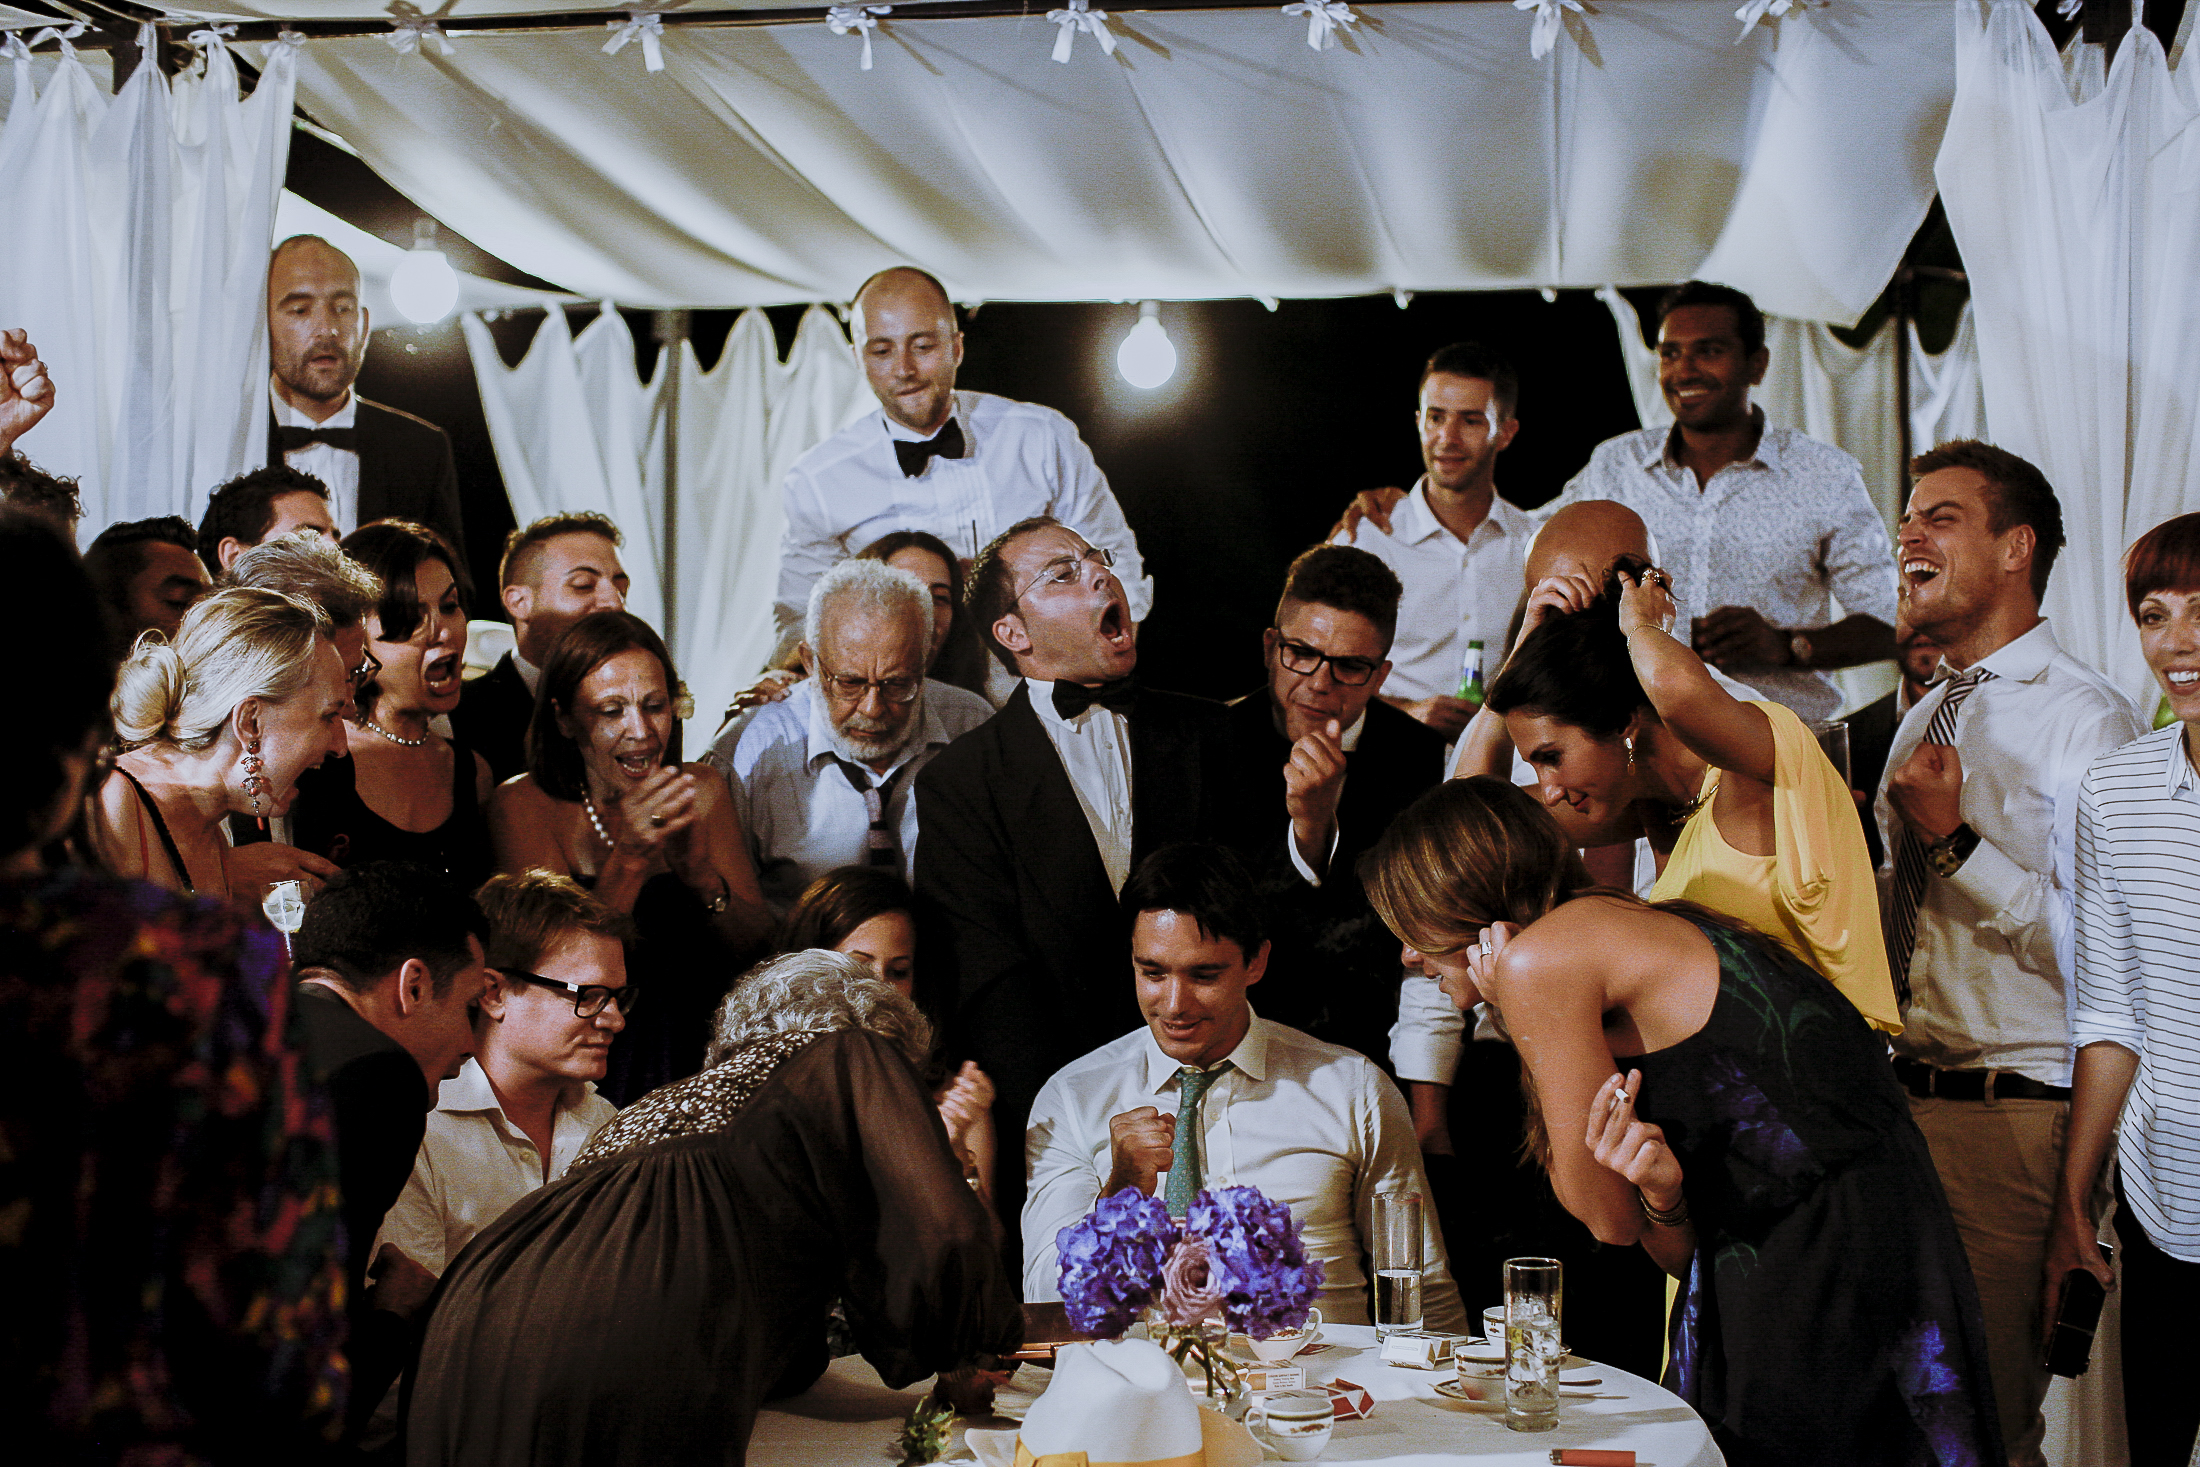 pasquale andreotti wedding guests at a wedding party